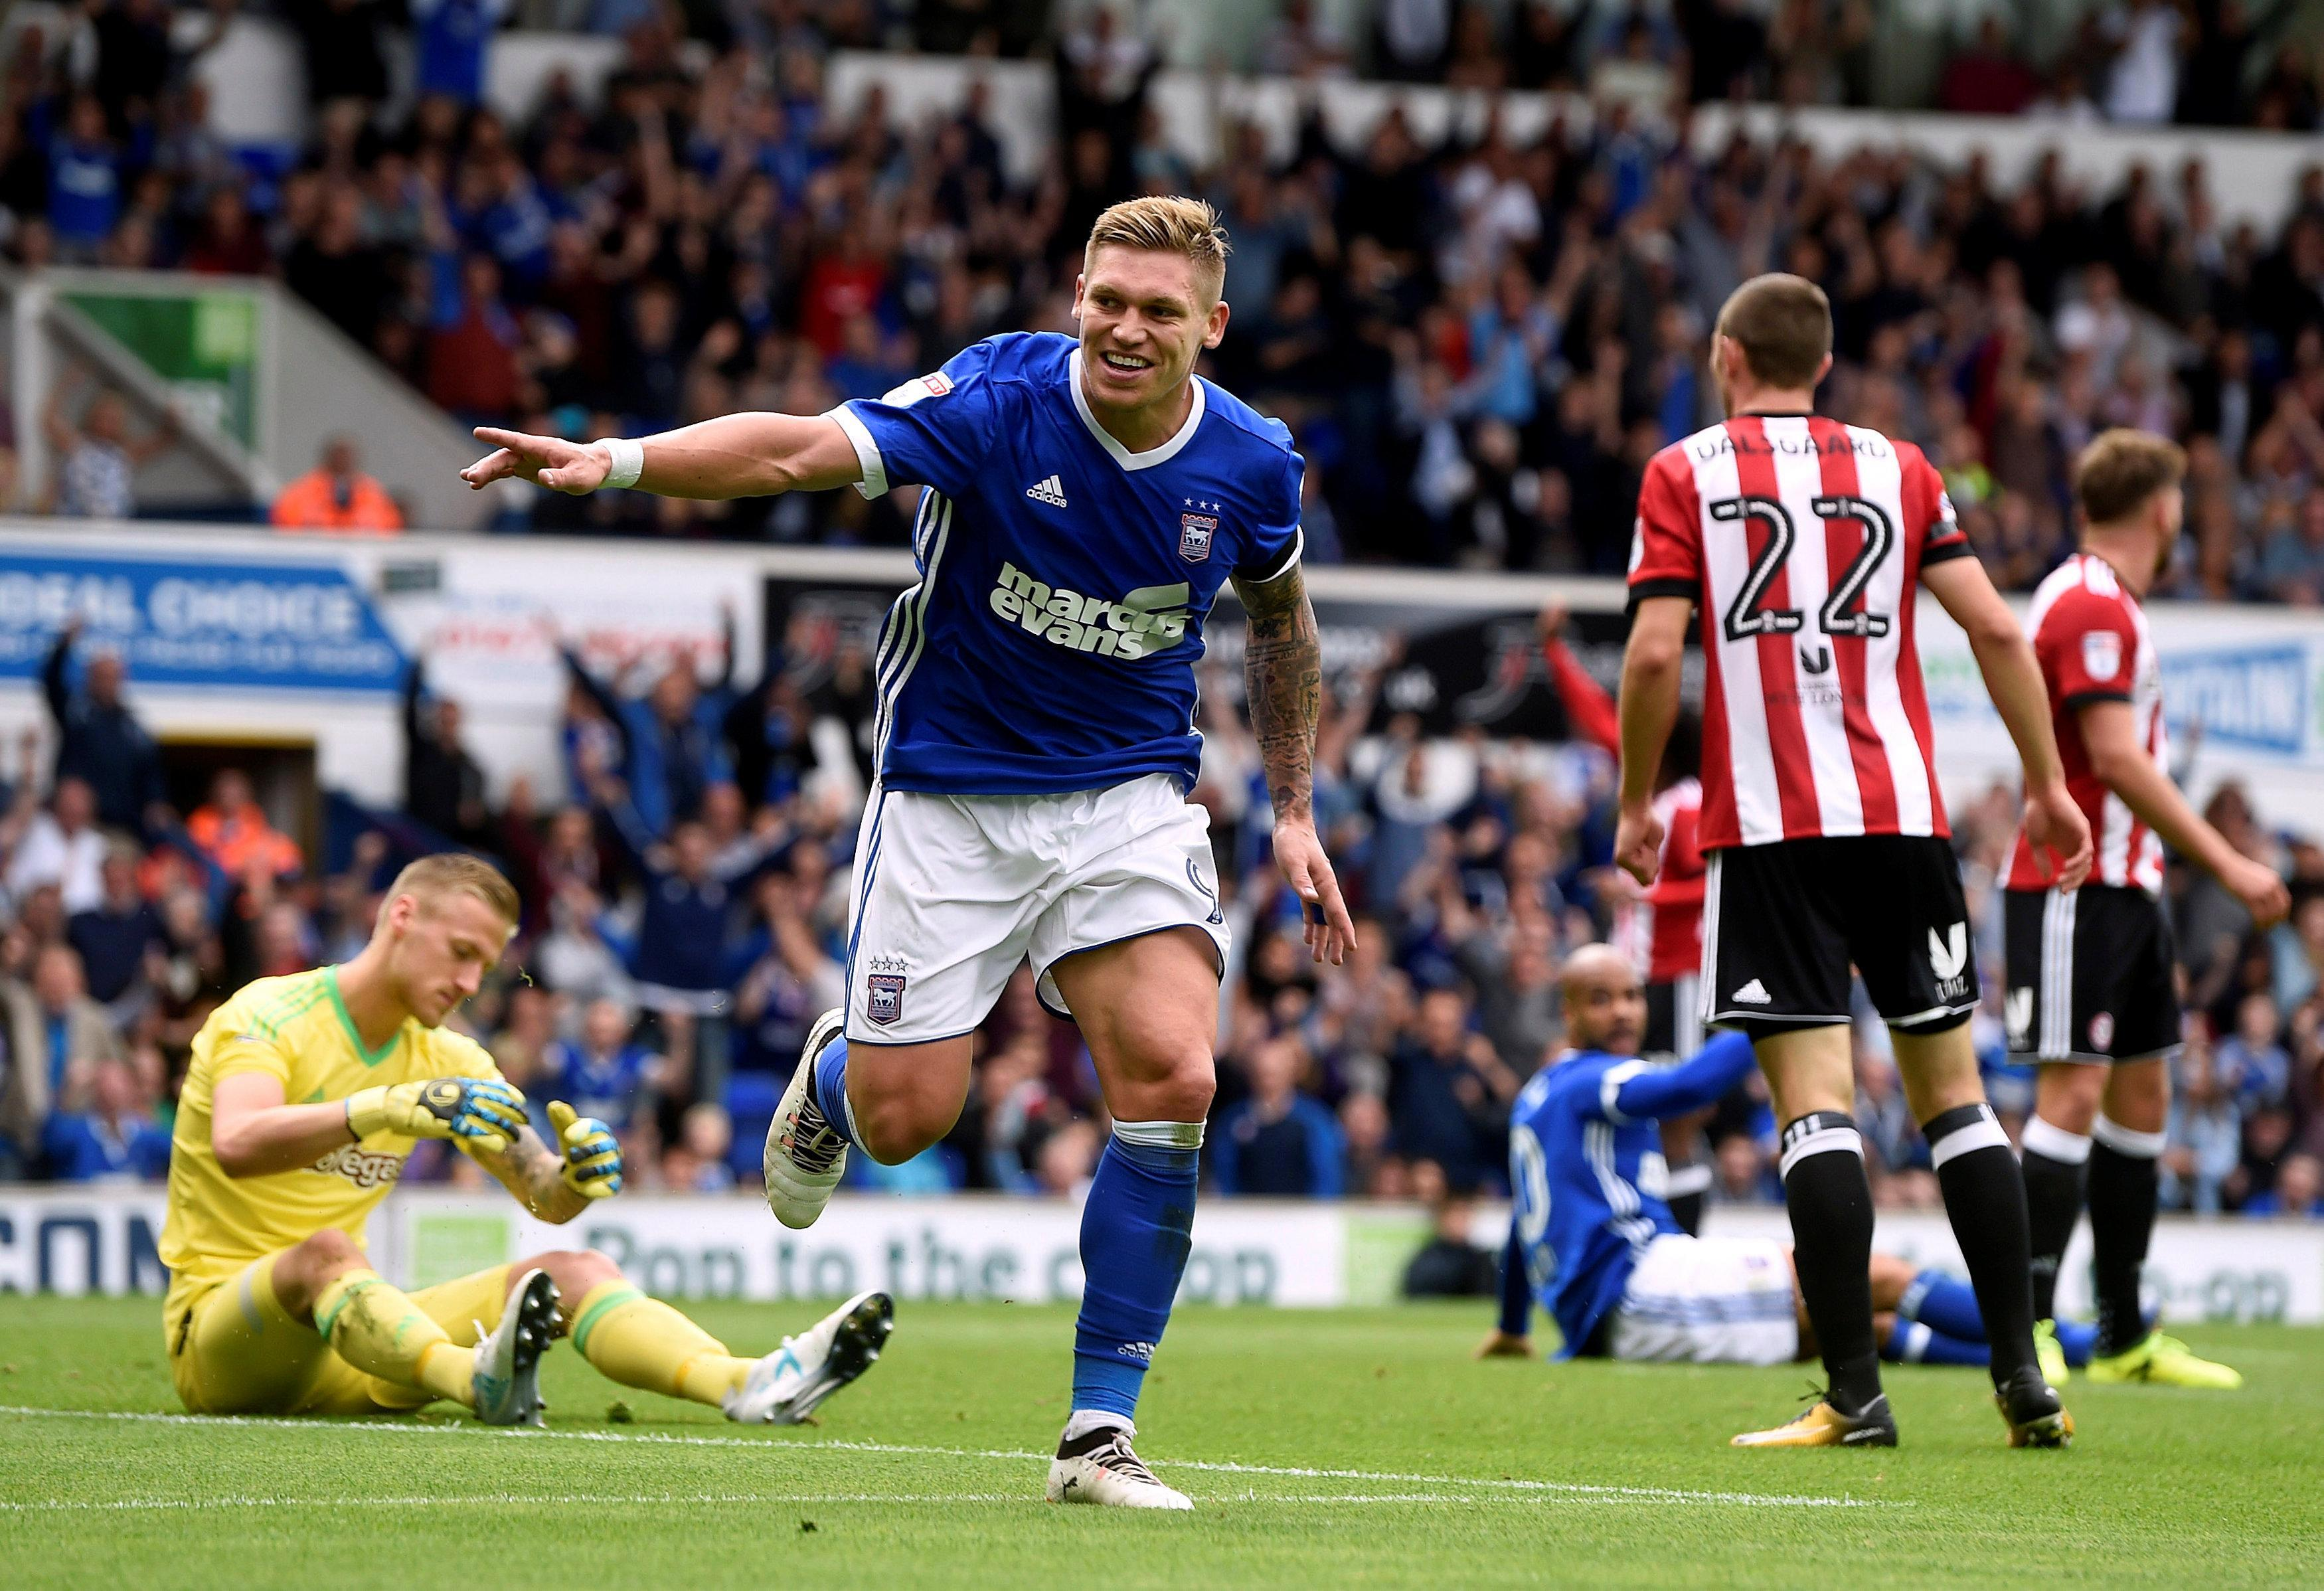 Boro have bid accepted for Martyn Waghorn